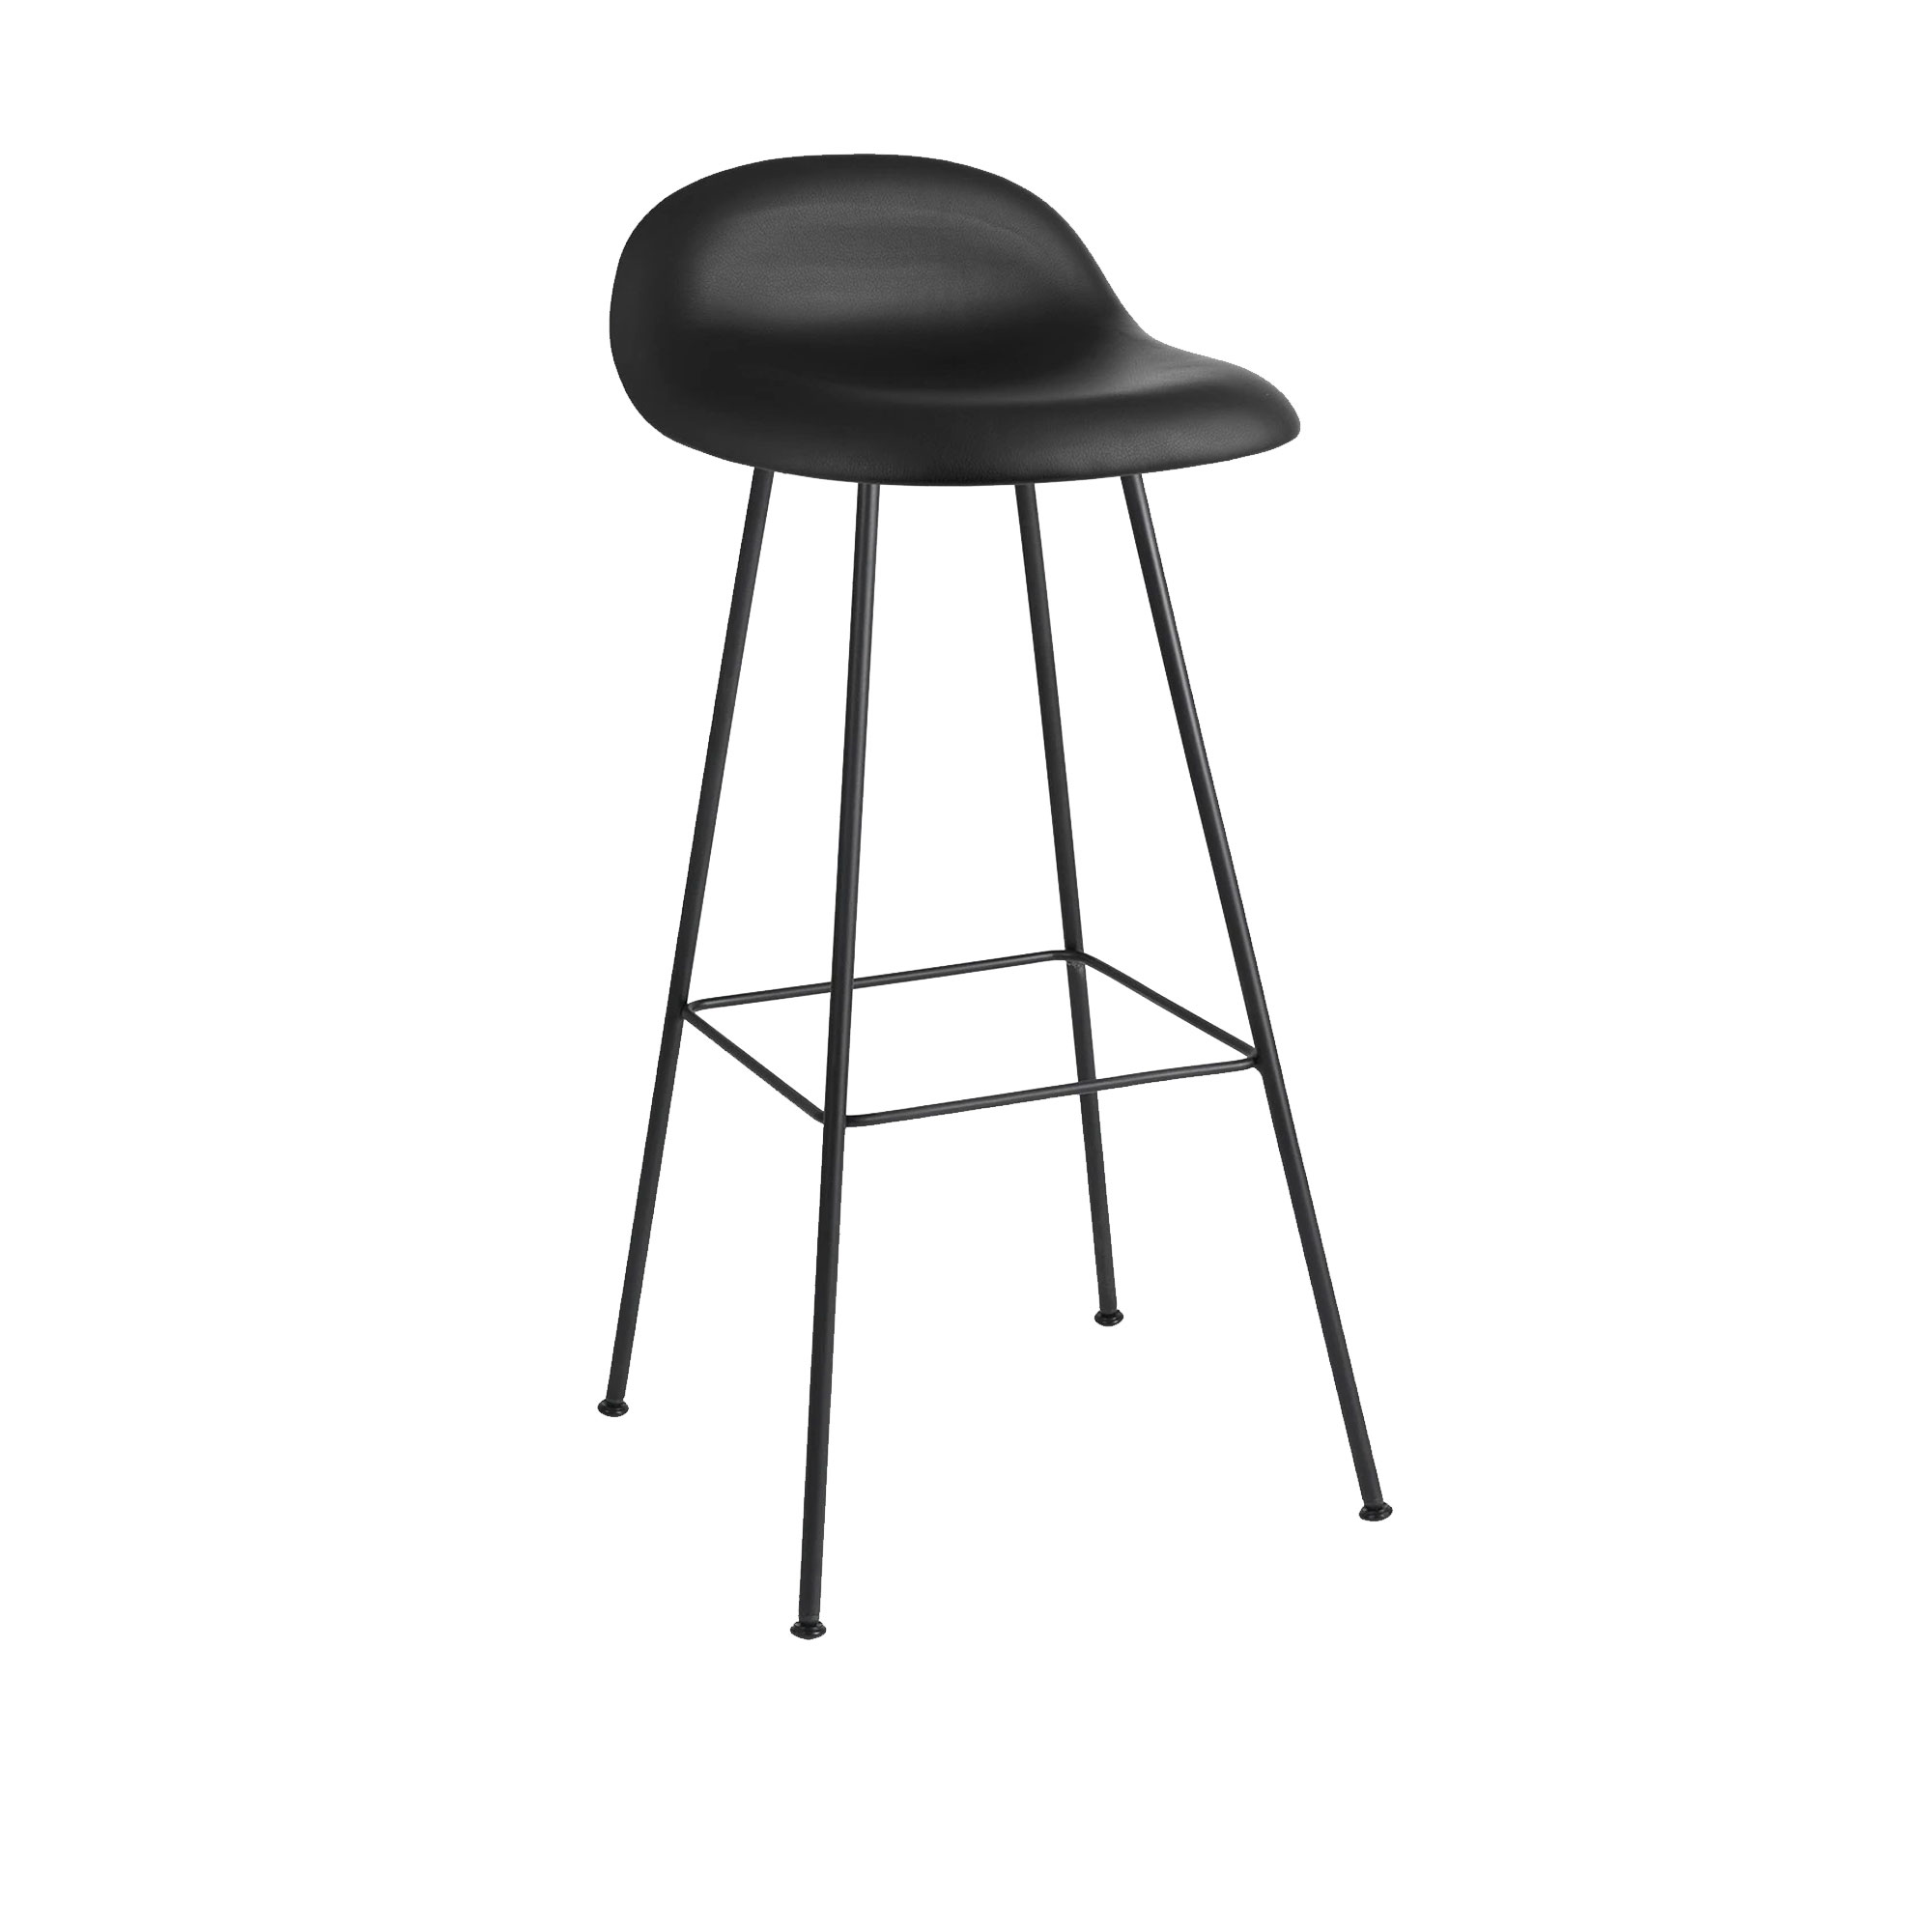 3D Counter Stool Center Base - Helklädd